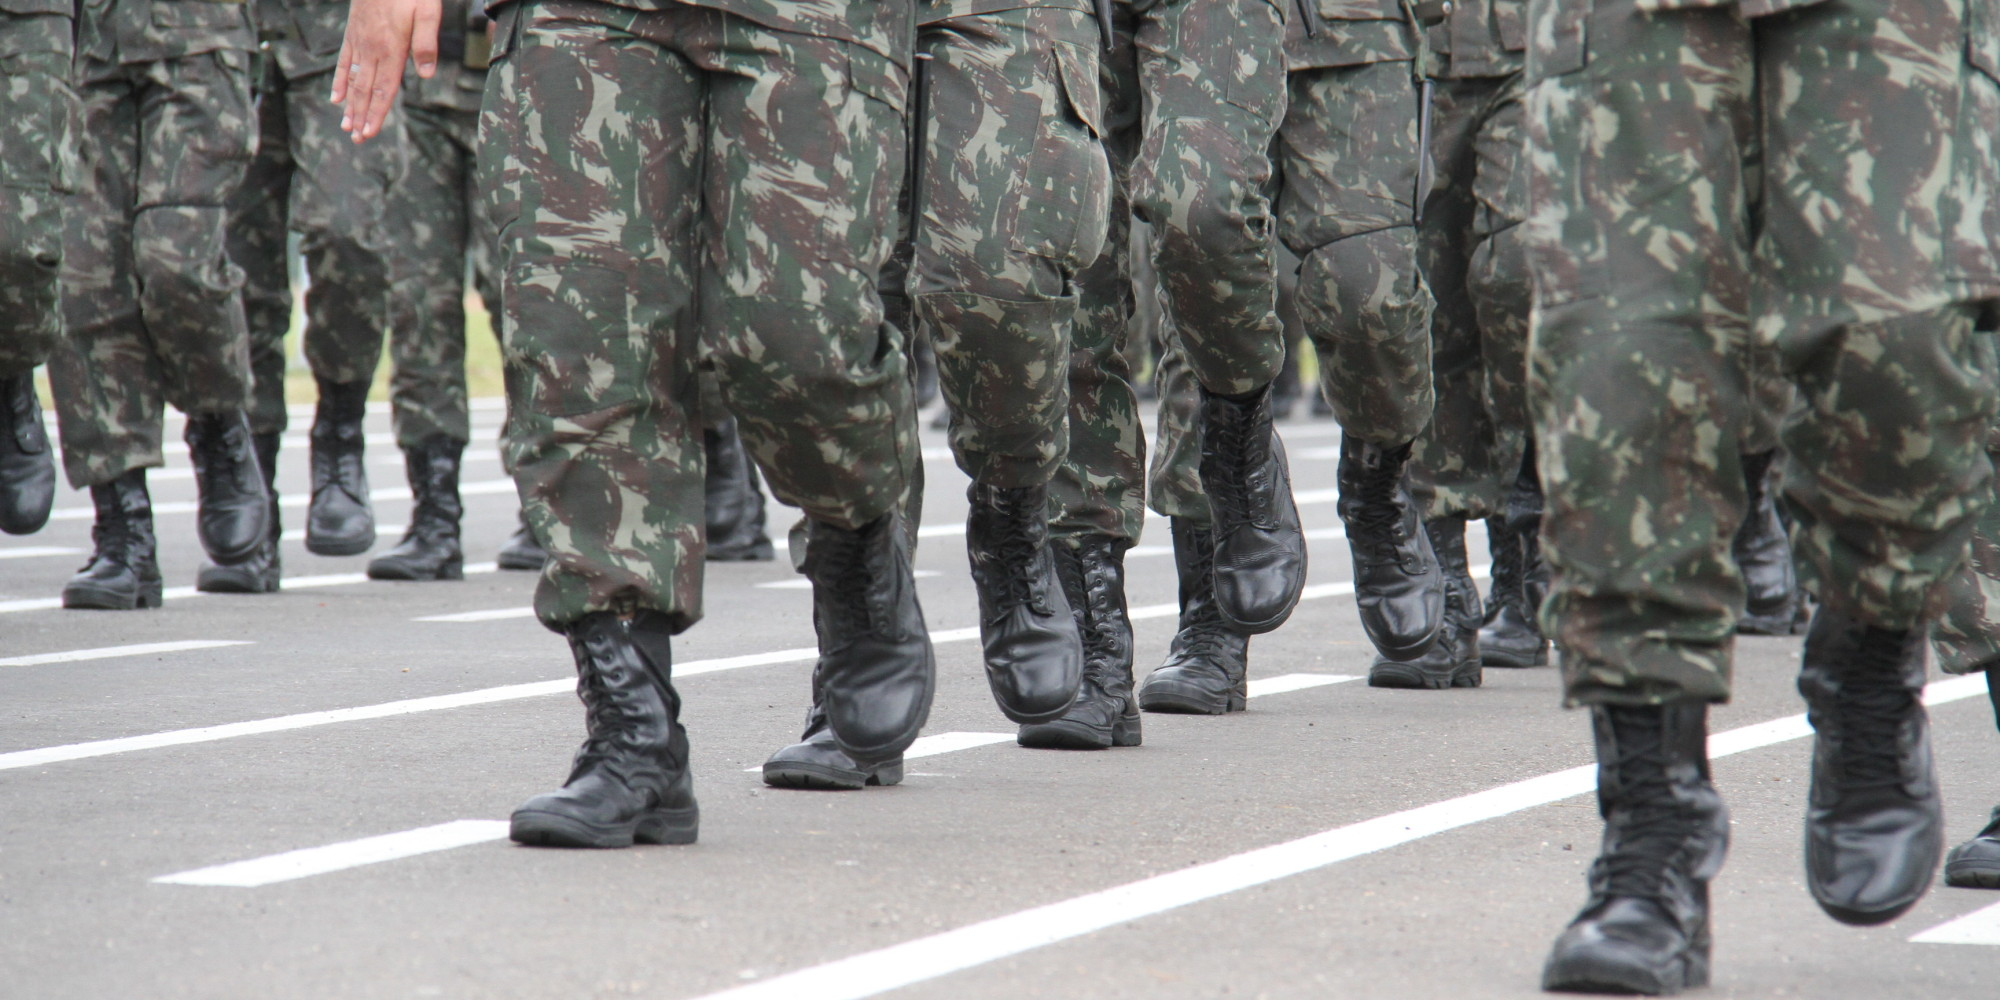 Debt Reduction Services >> Debt Collectors Targeting Members Of The Armed Services | HuffPost